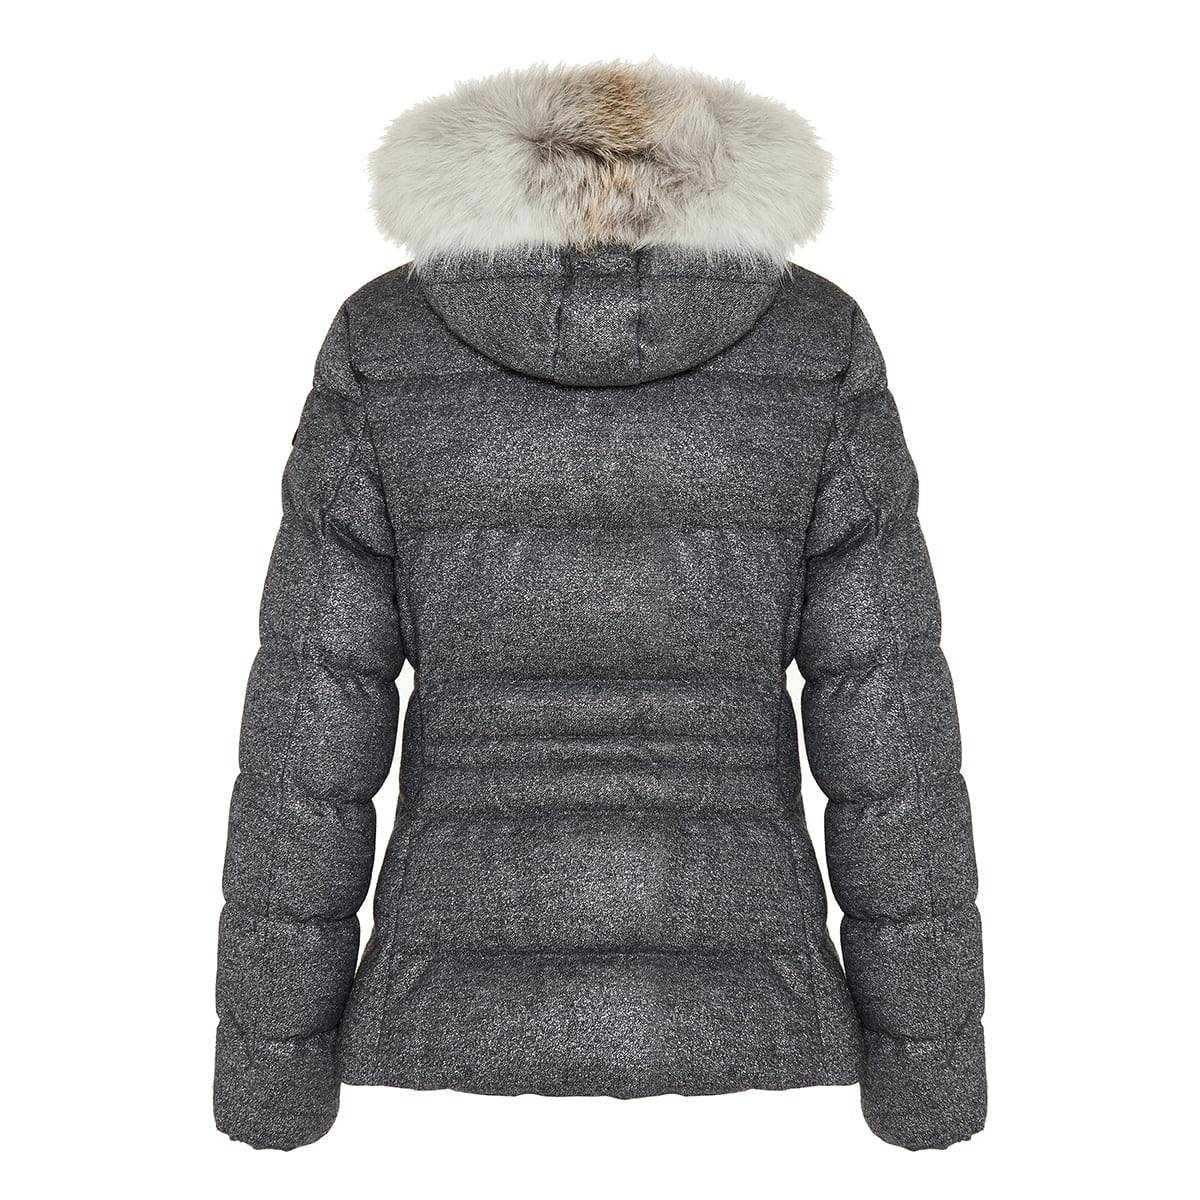 Cardamine quilted wool puffer jacket